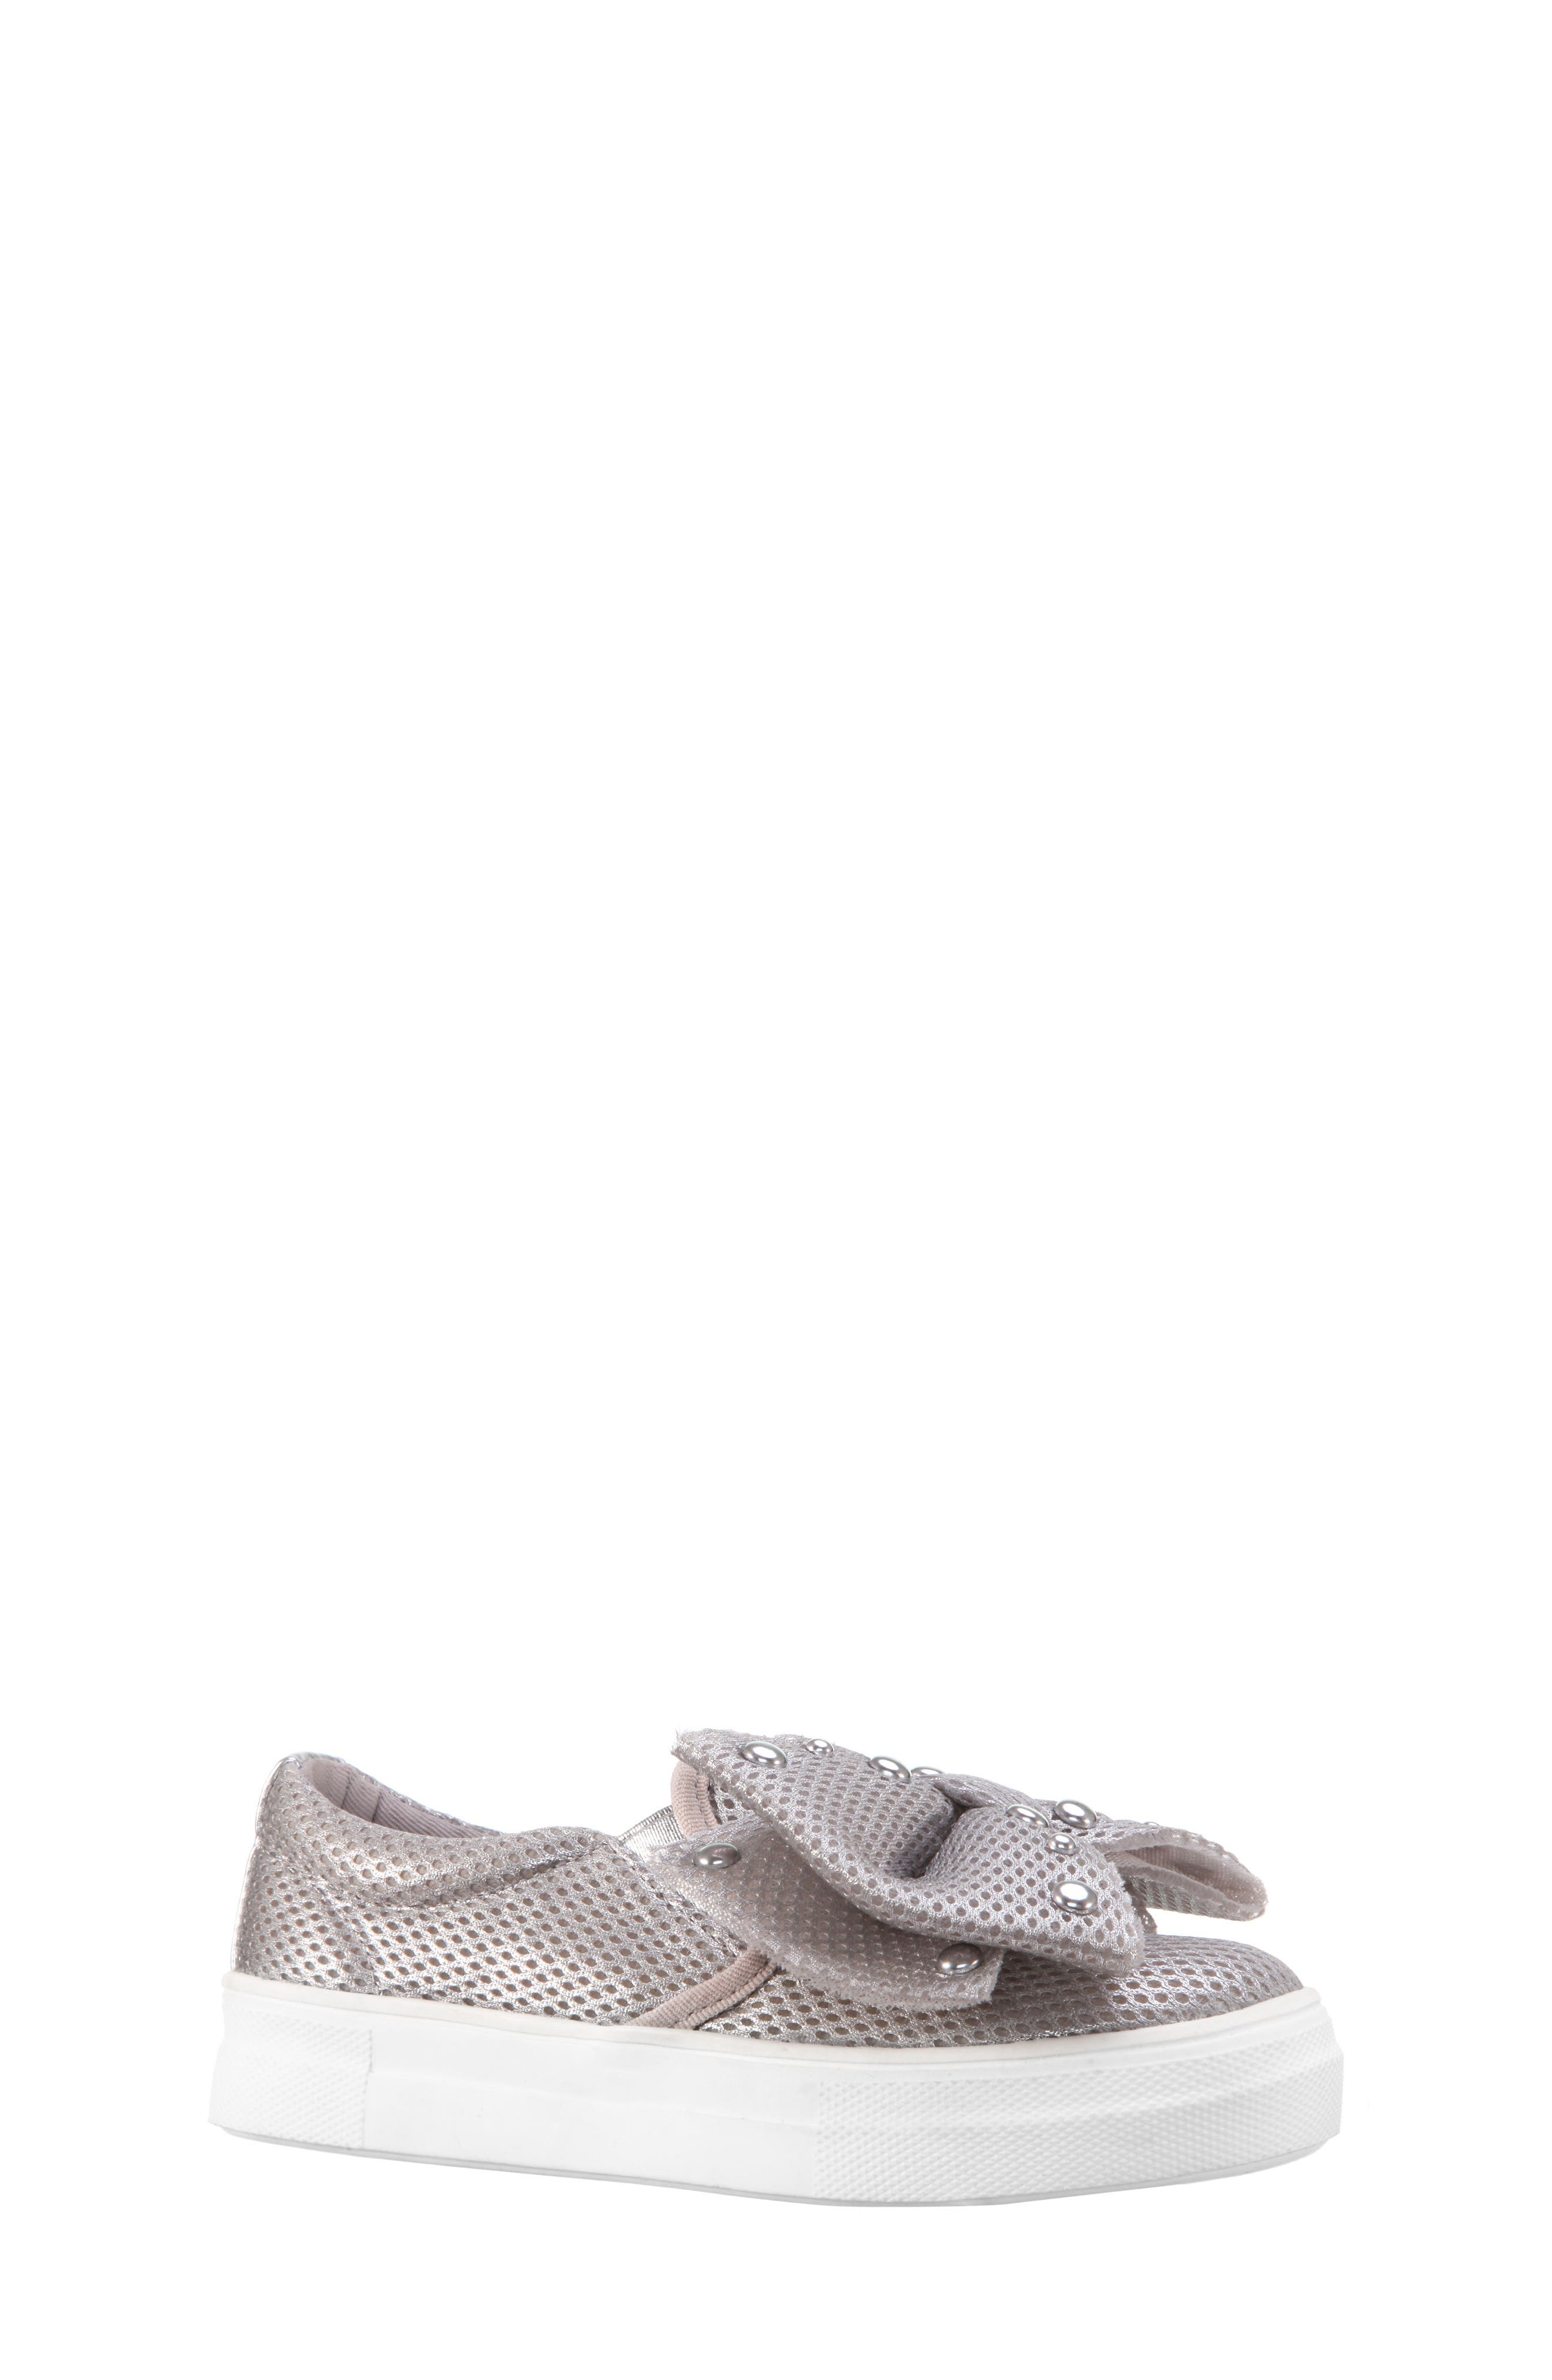 Mary Bow Slip-On Sneaker,                         Main,                         color, Silver Mesh